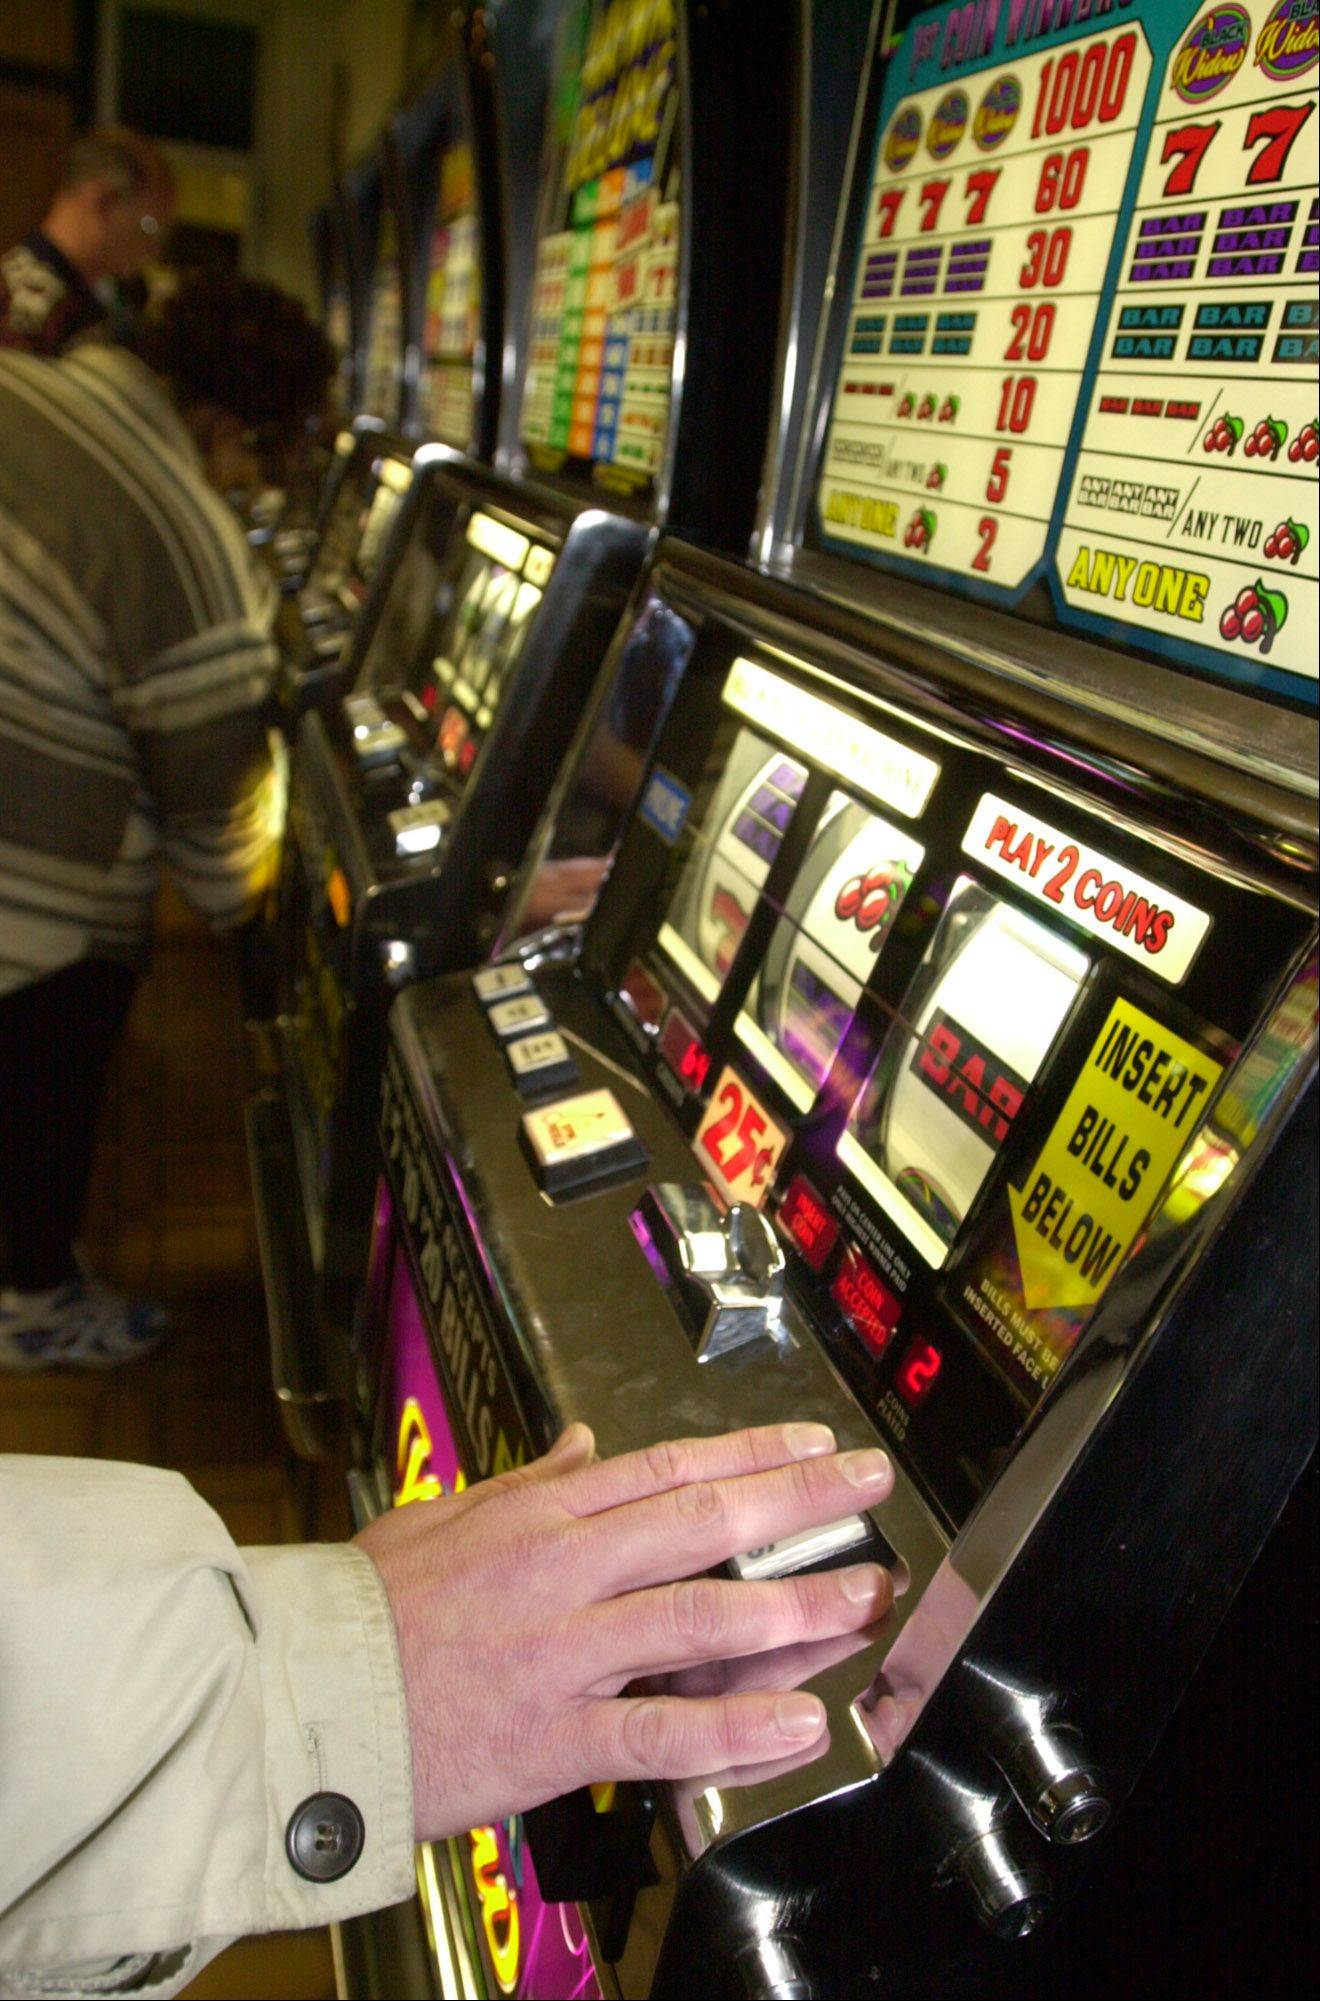 Casinos in Illinois currently are allowed to be open a maximum of 22 hours a day.